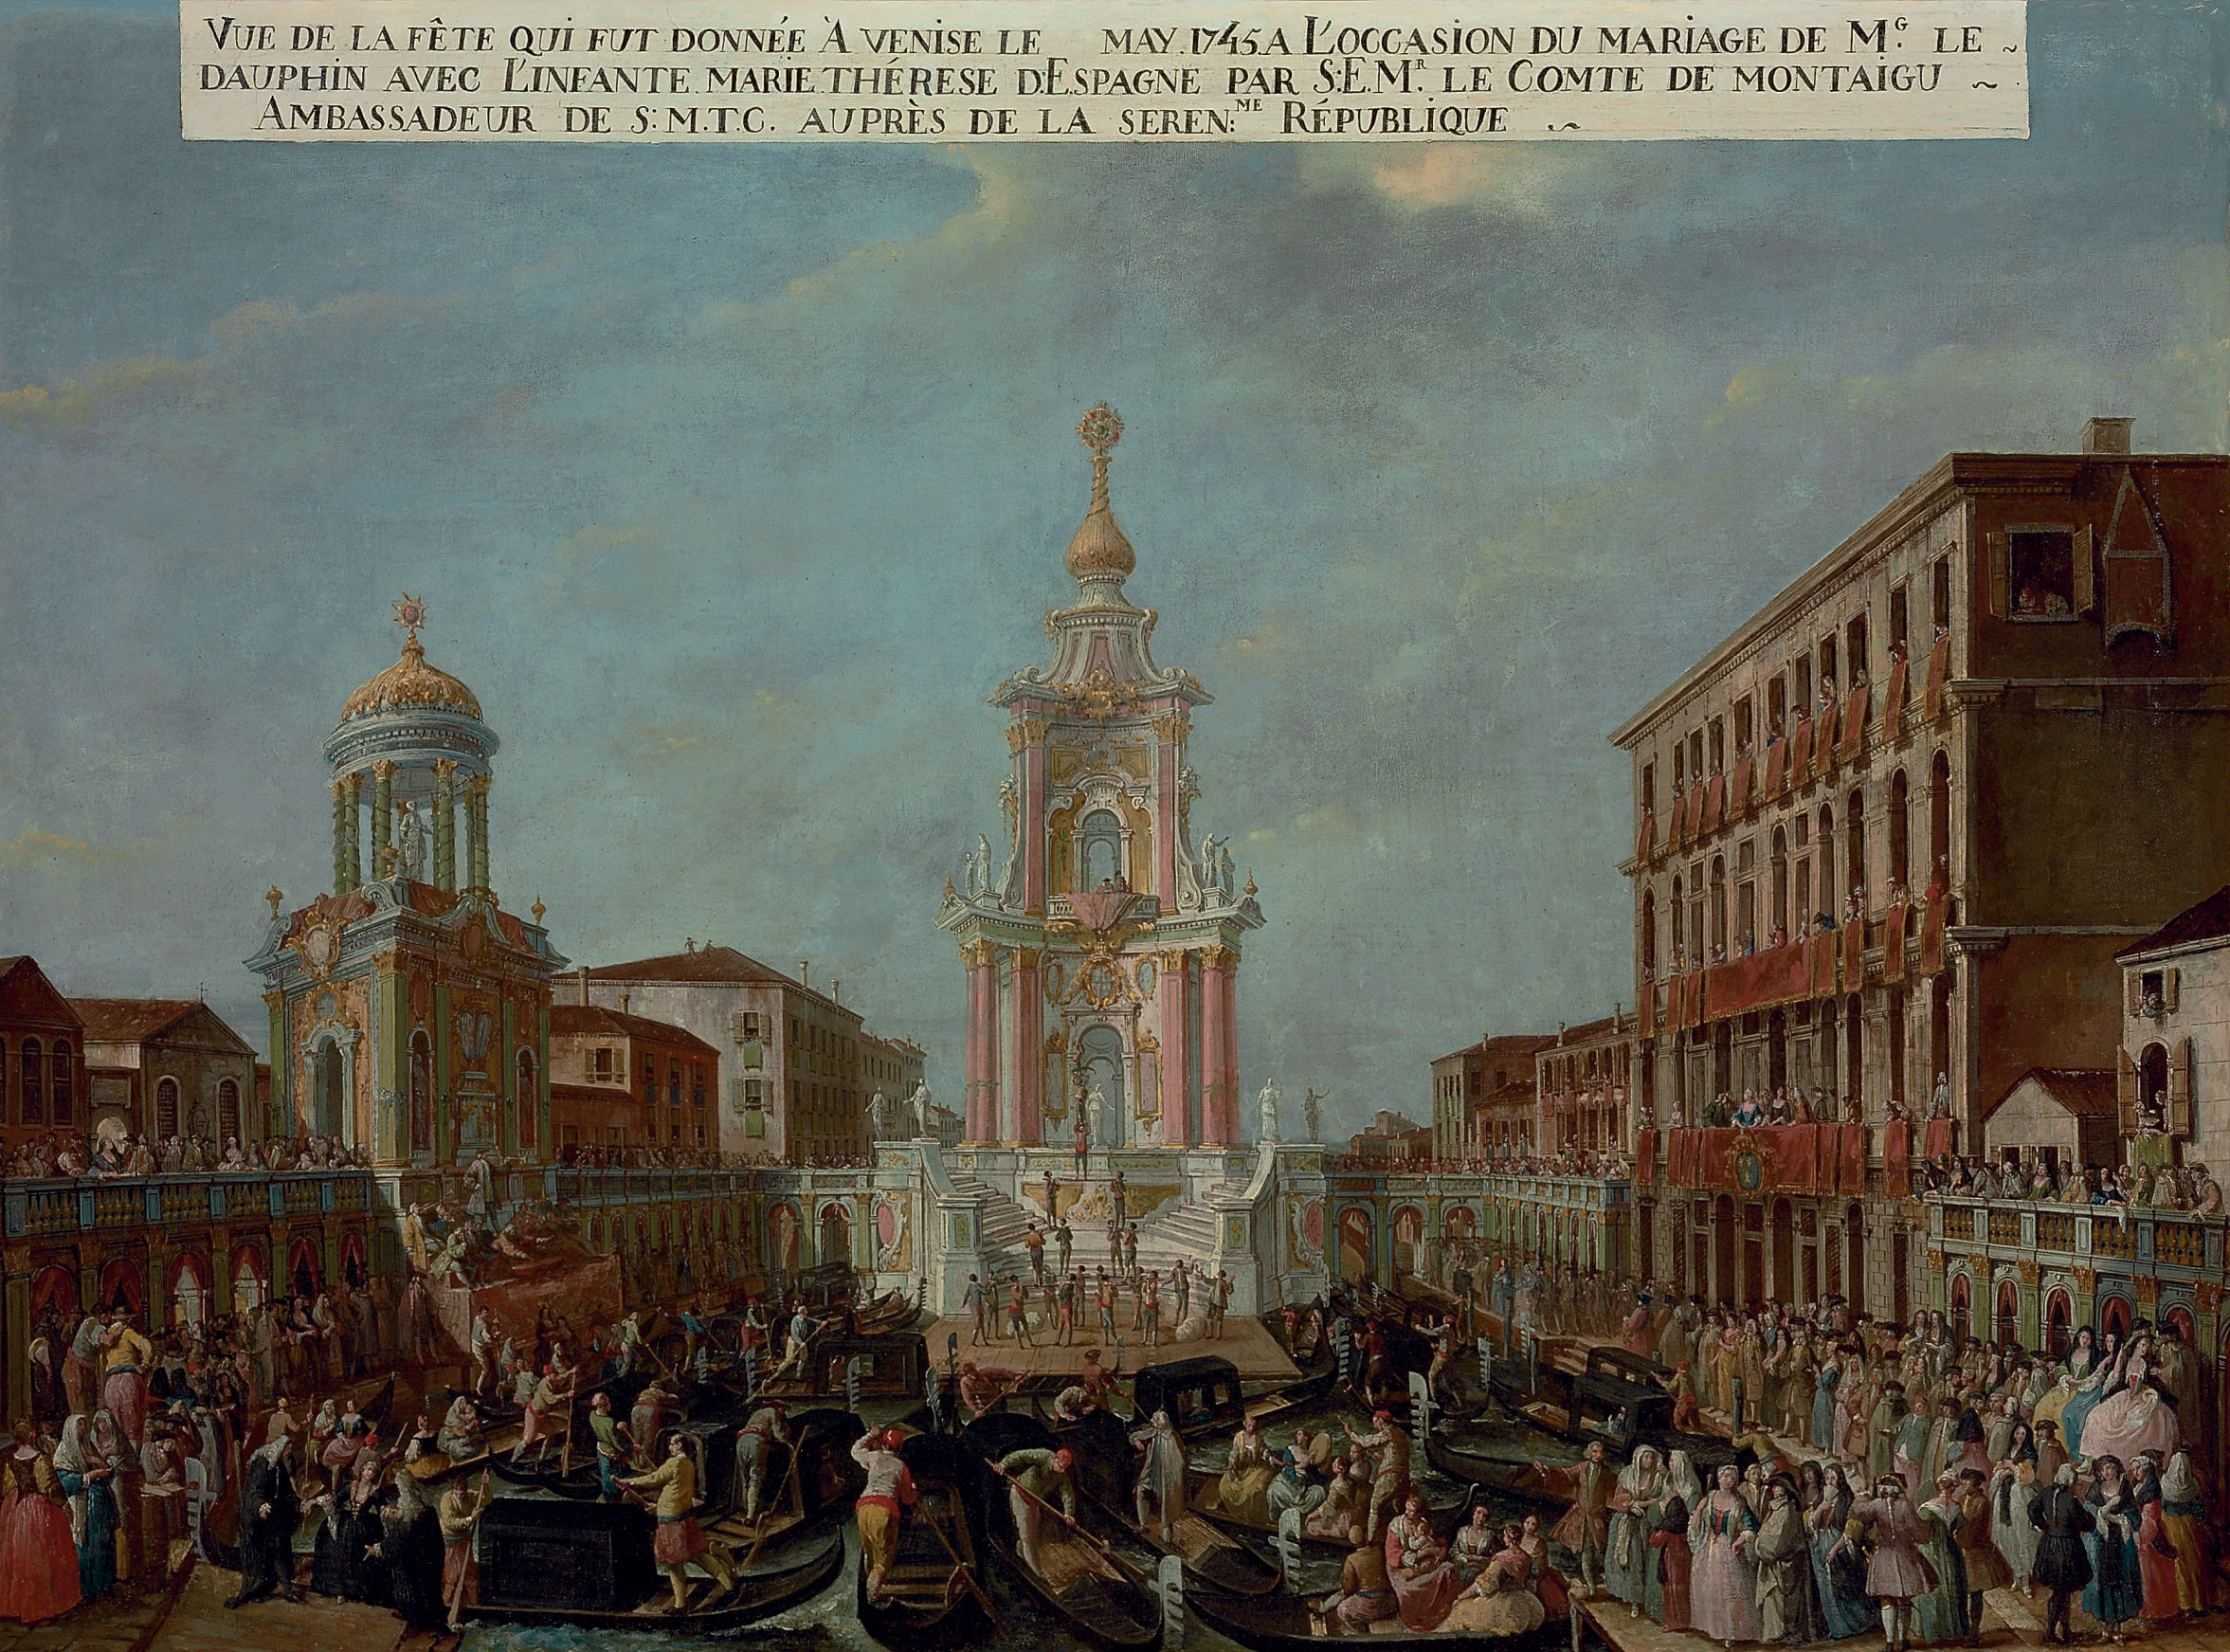 The celebration of the Marriage of the Dauphin of France to the Infanta Maria Teresa of Spain, at the French Embassy in Venice, 1745